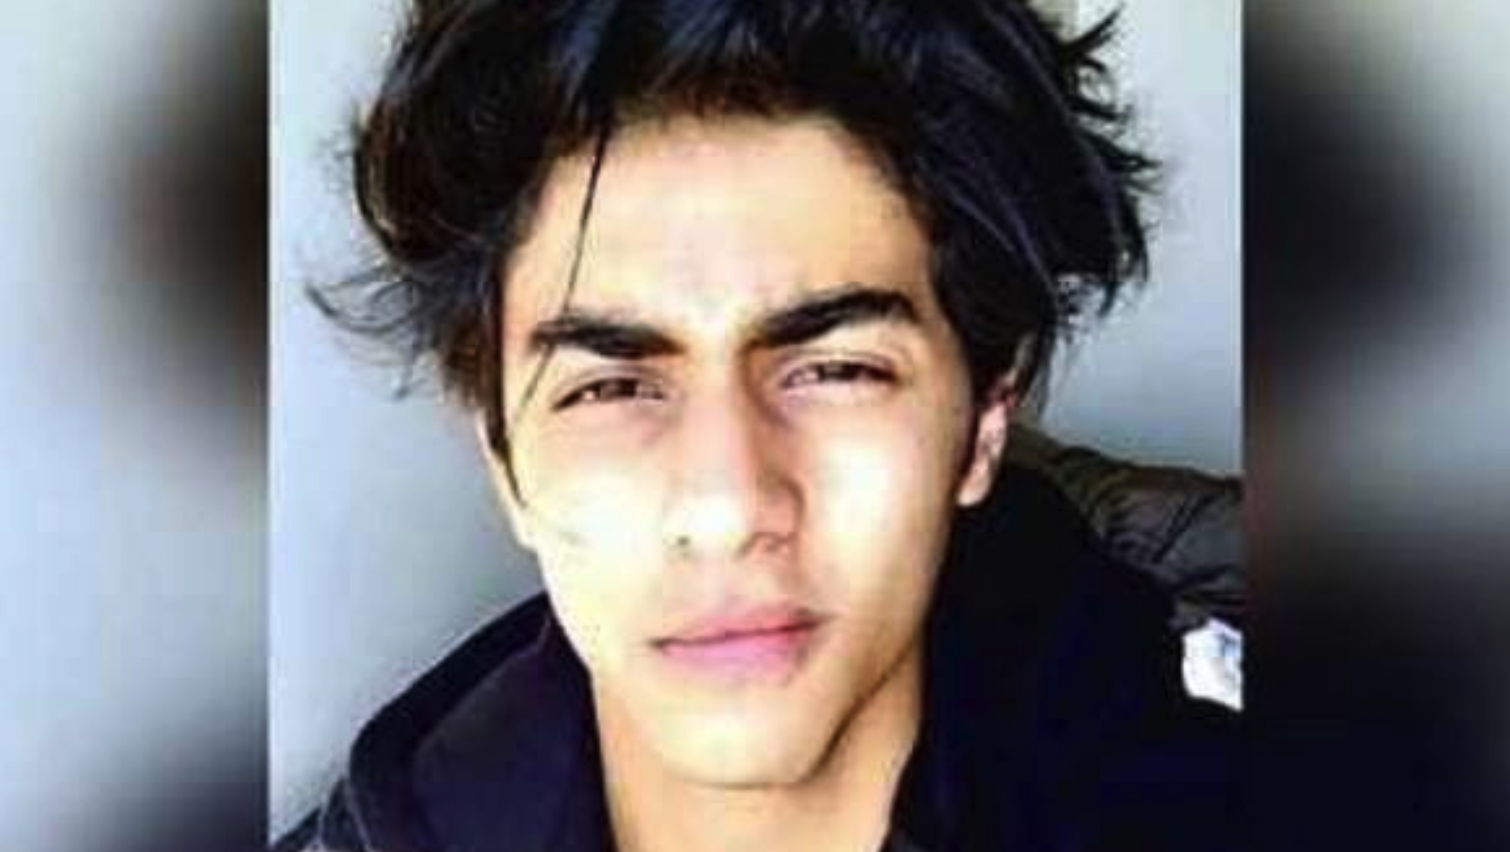 Bollywood: Aryan Khan tells NCB official he will work for the poor